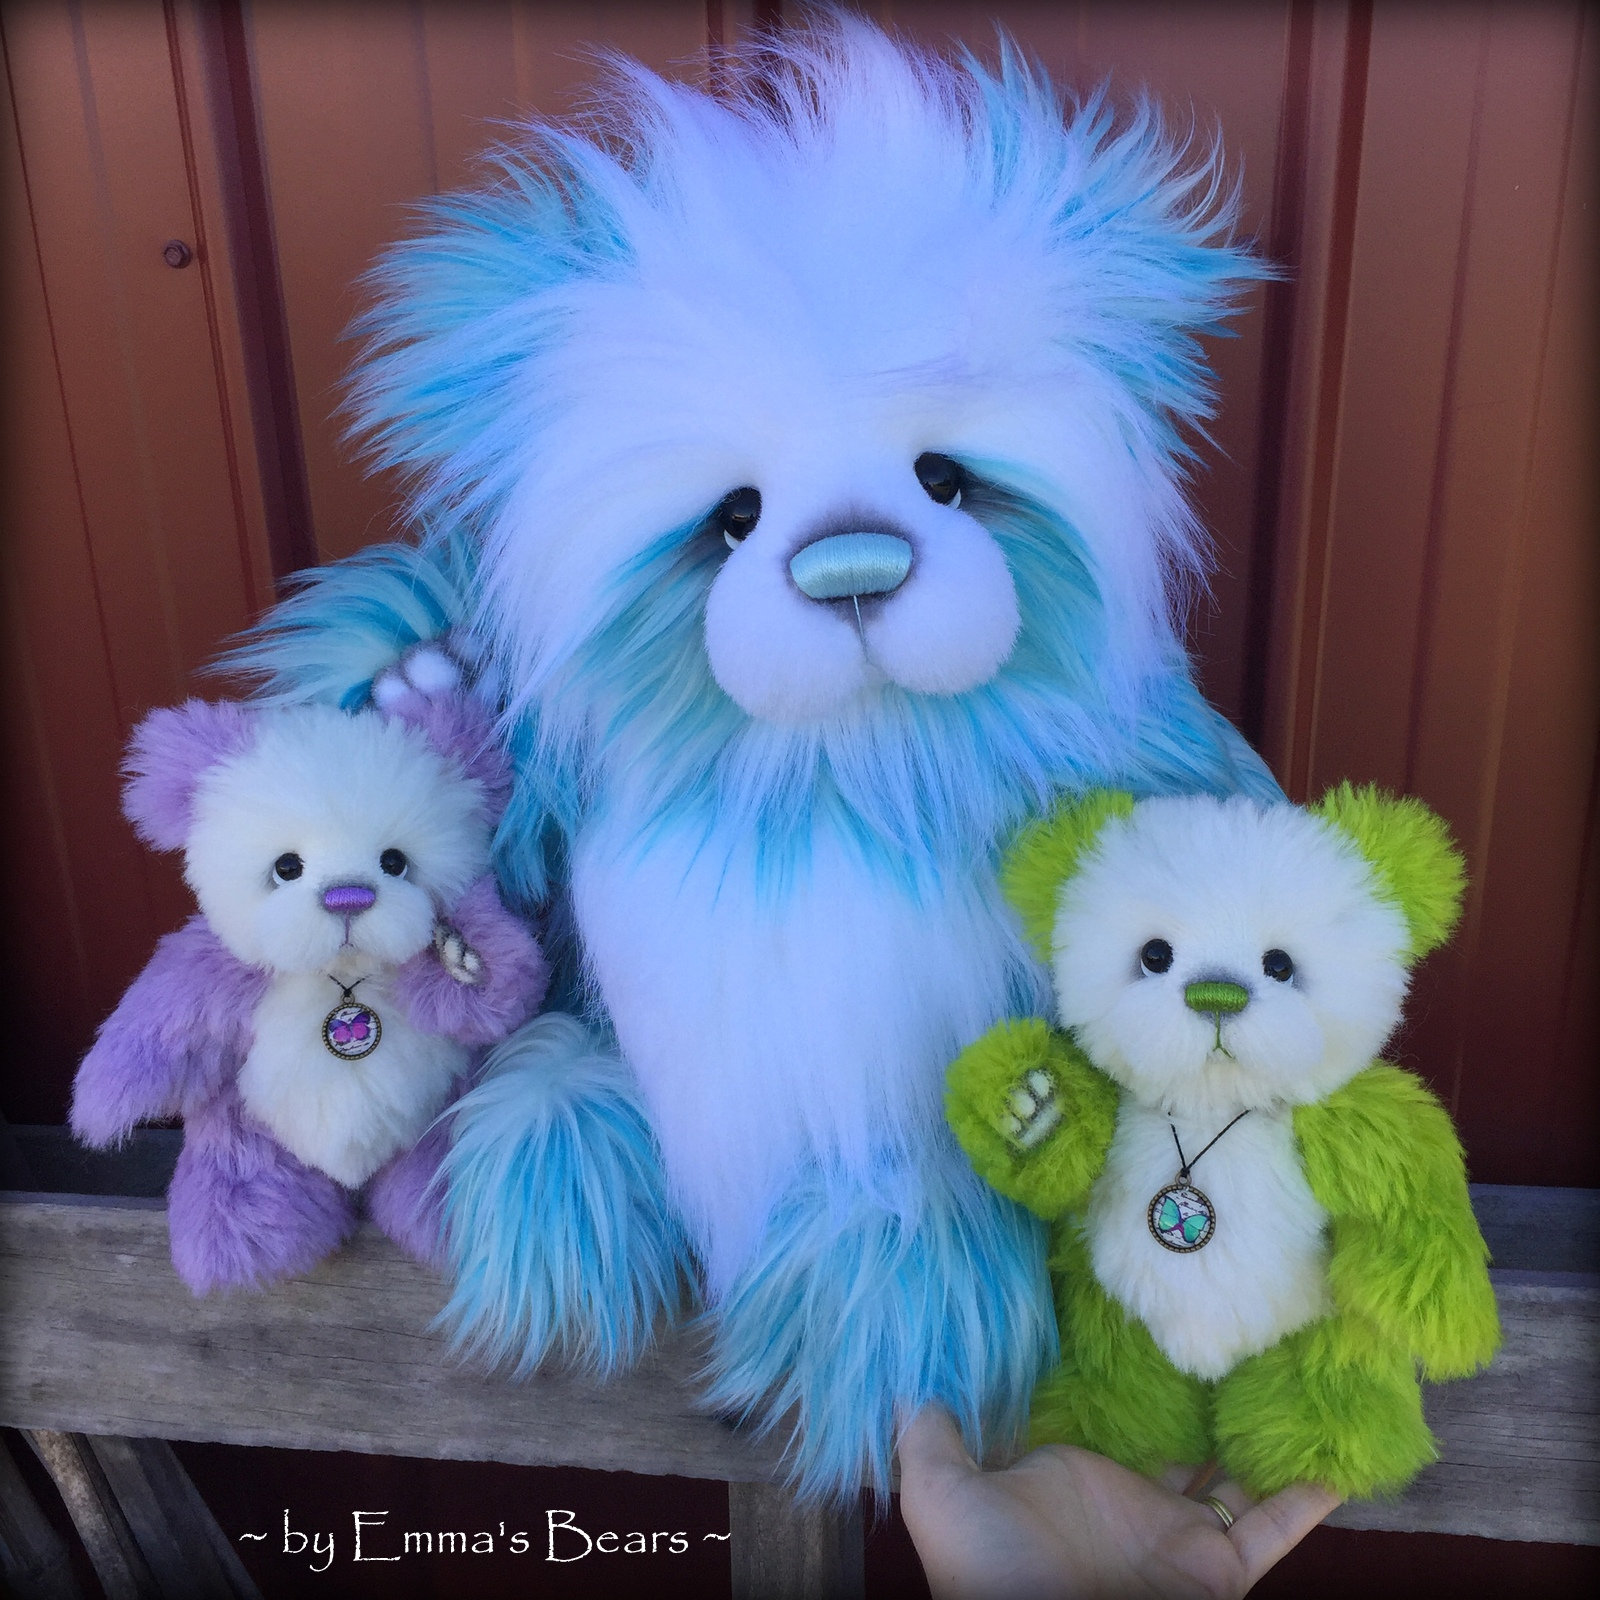 The Inner World of Emma's Bears